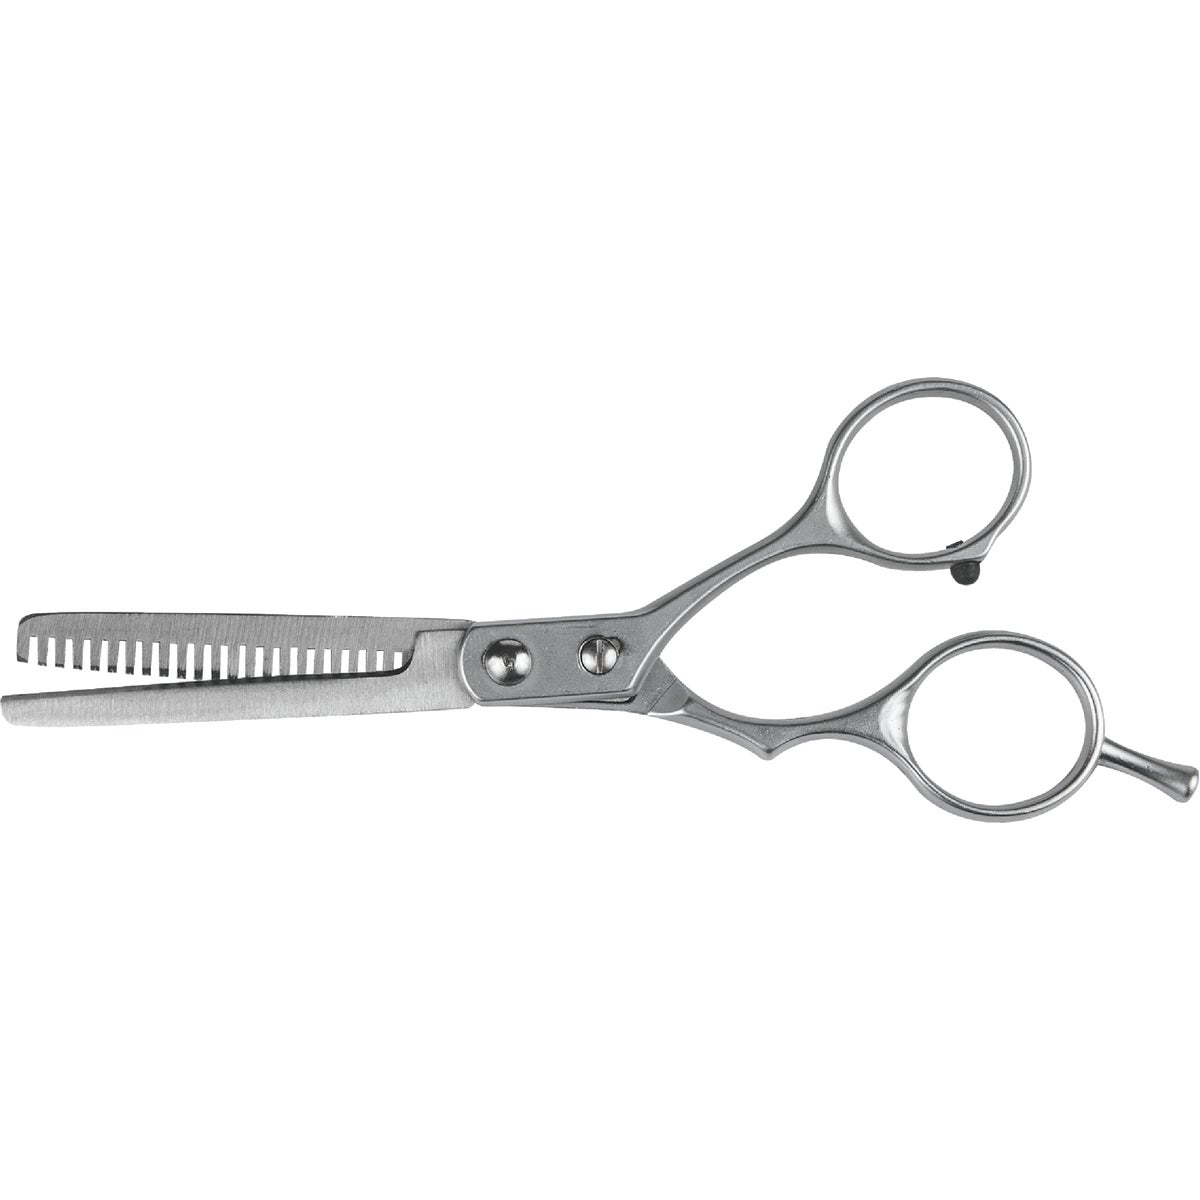 "BARBER 6"" THINNING SHEAR - 19123P by Klein Tools Inc"